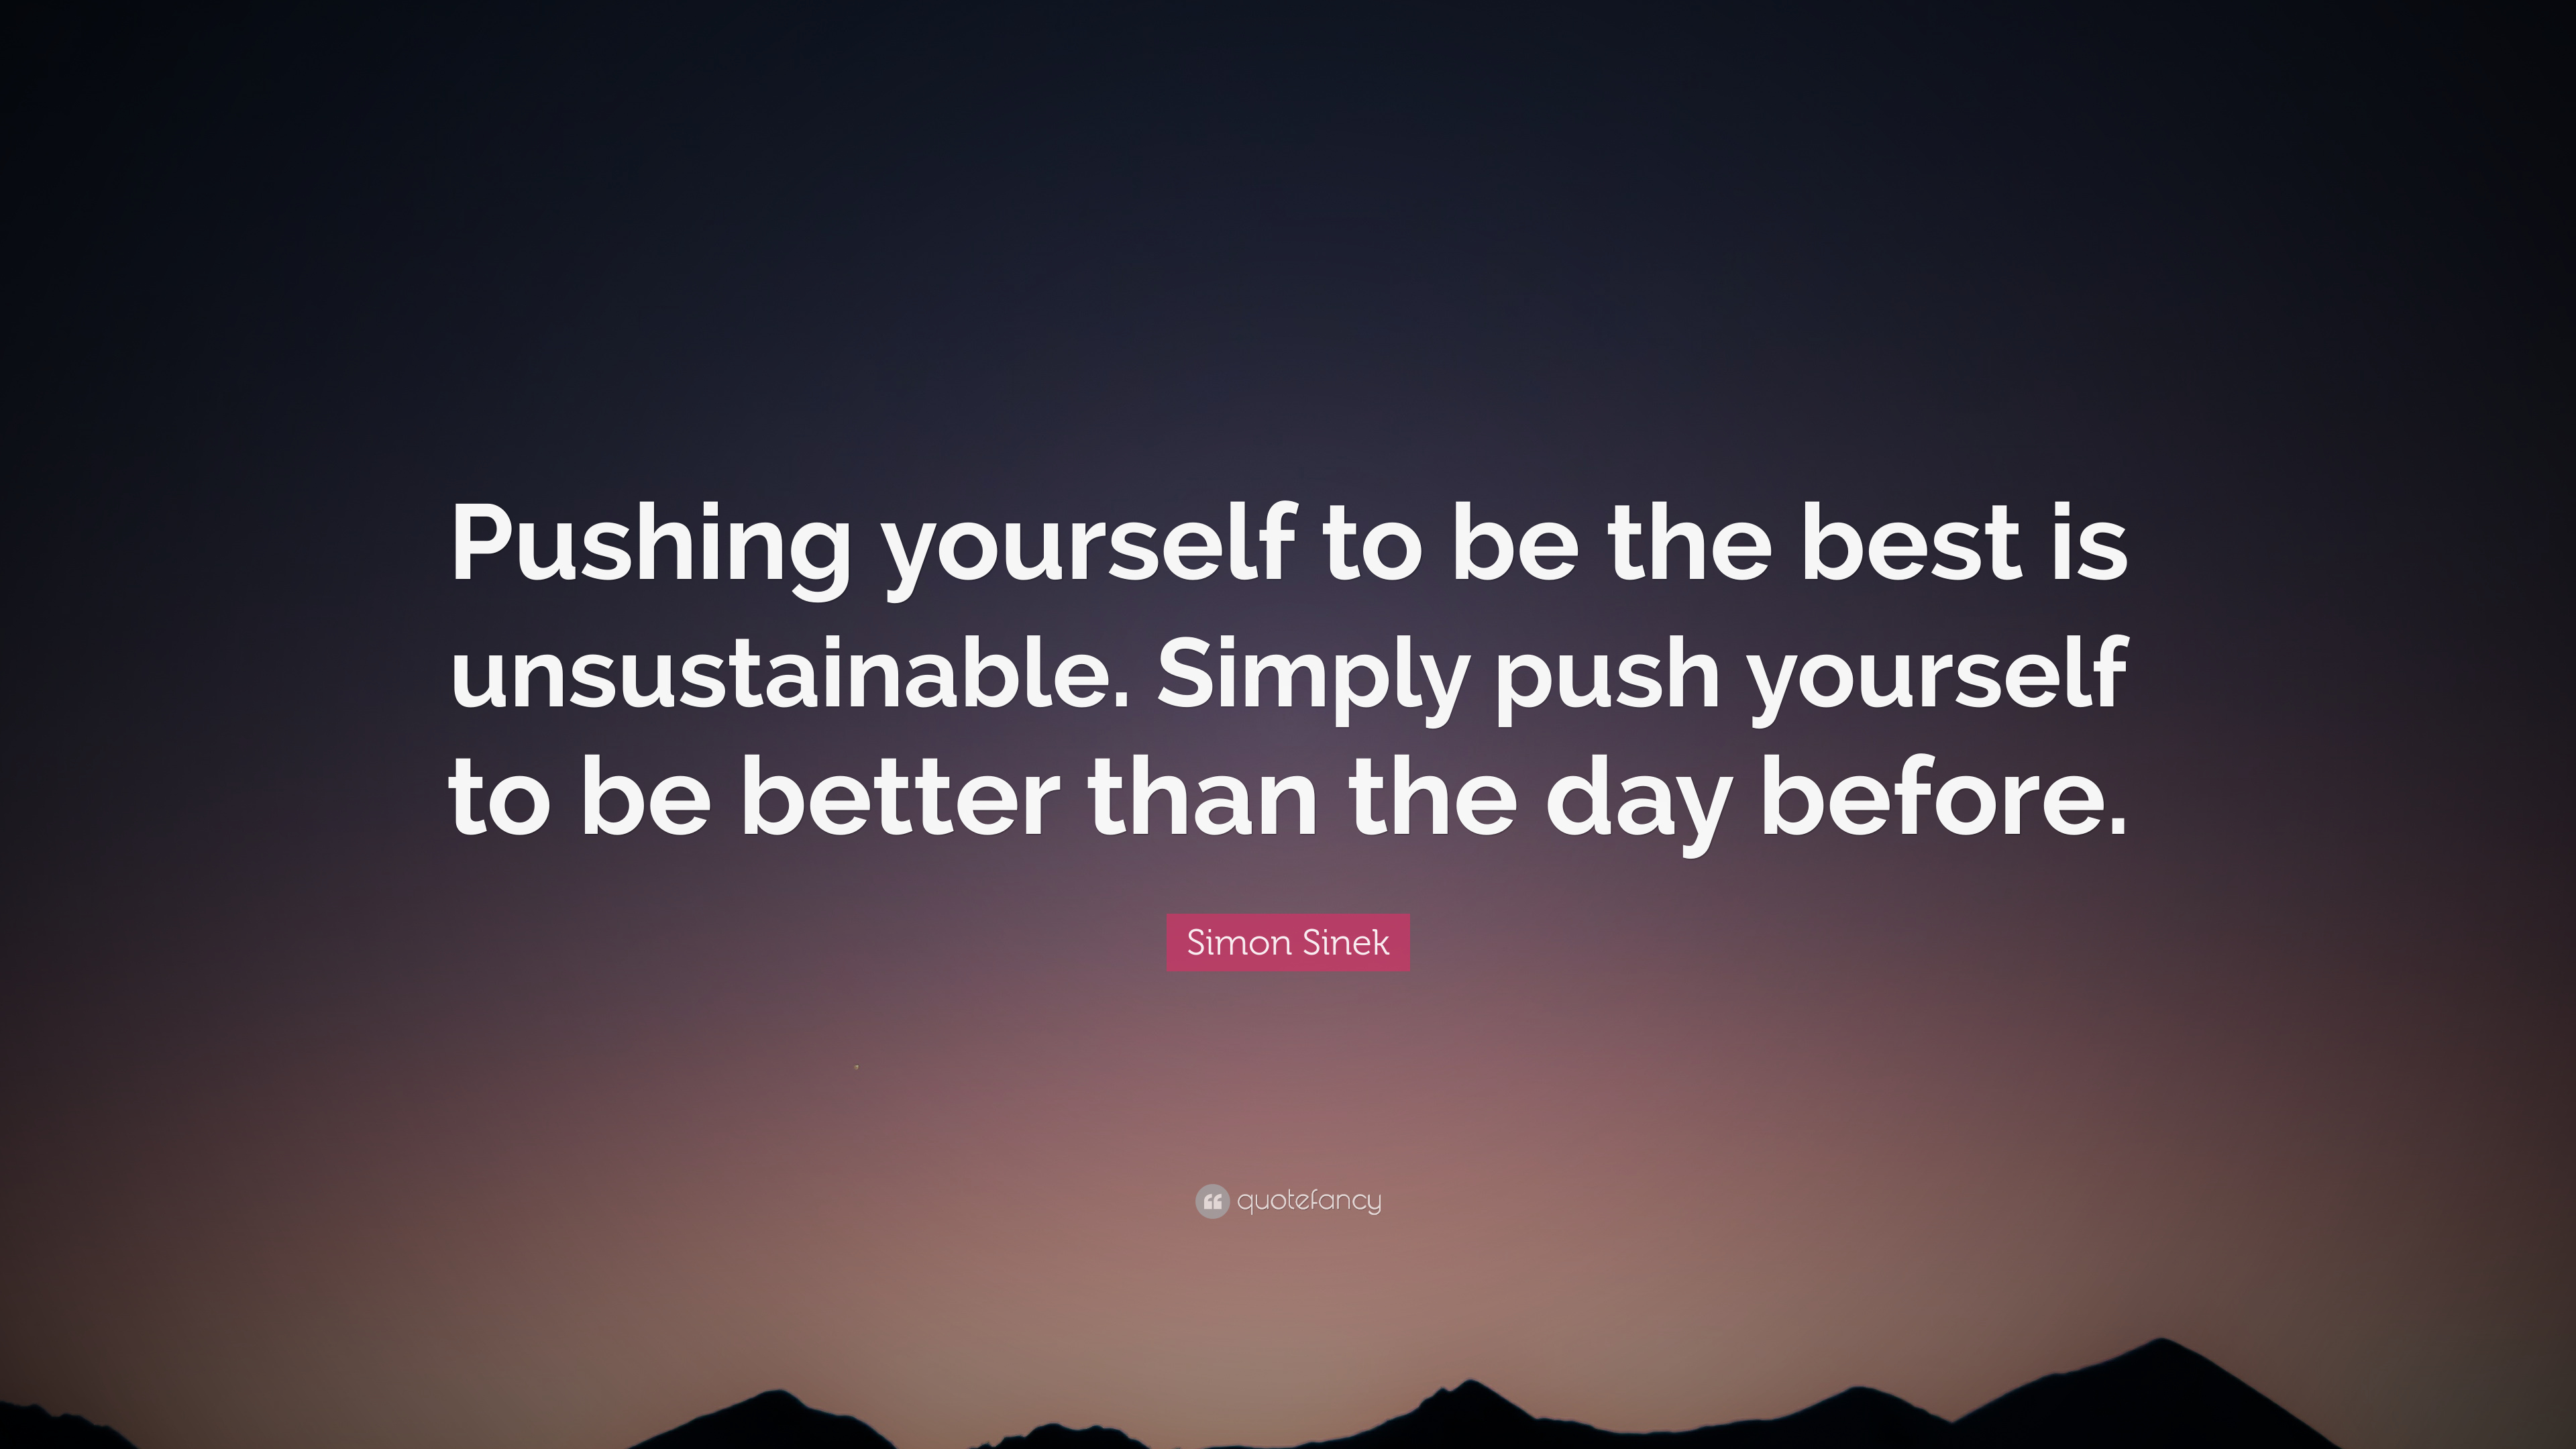 Simon Sinek Quote Pushing Yourself To Be The Best Is Unsustainable